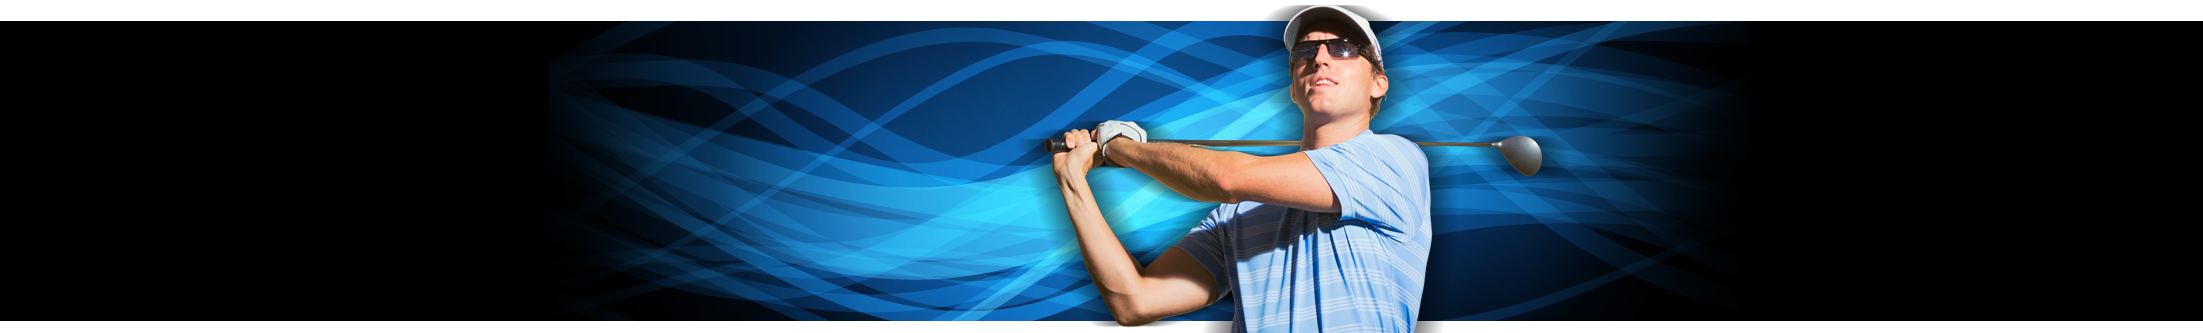 Gallery 2 header - man playing golf after receiving sports performance chiropractic care at Anderson Peak Performance, New York